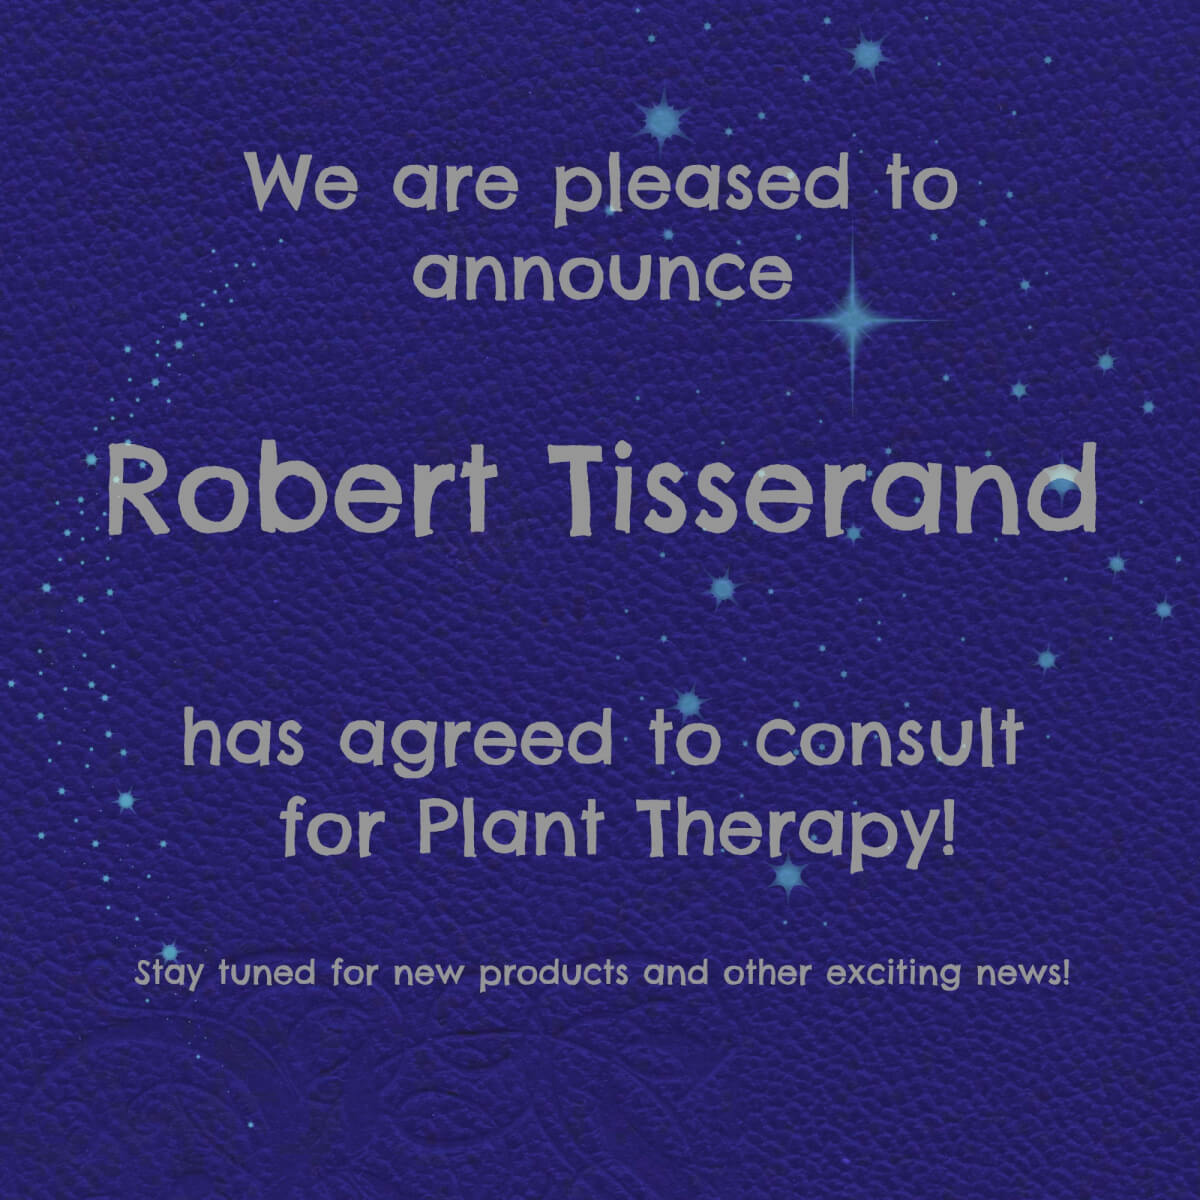 We are pleased to announce Robert Tisserand has agreed to consult for Plant Therapy